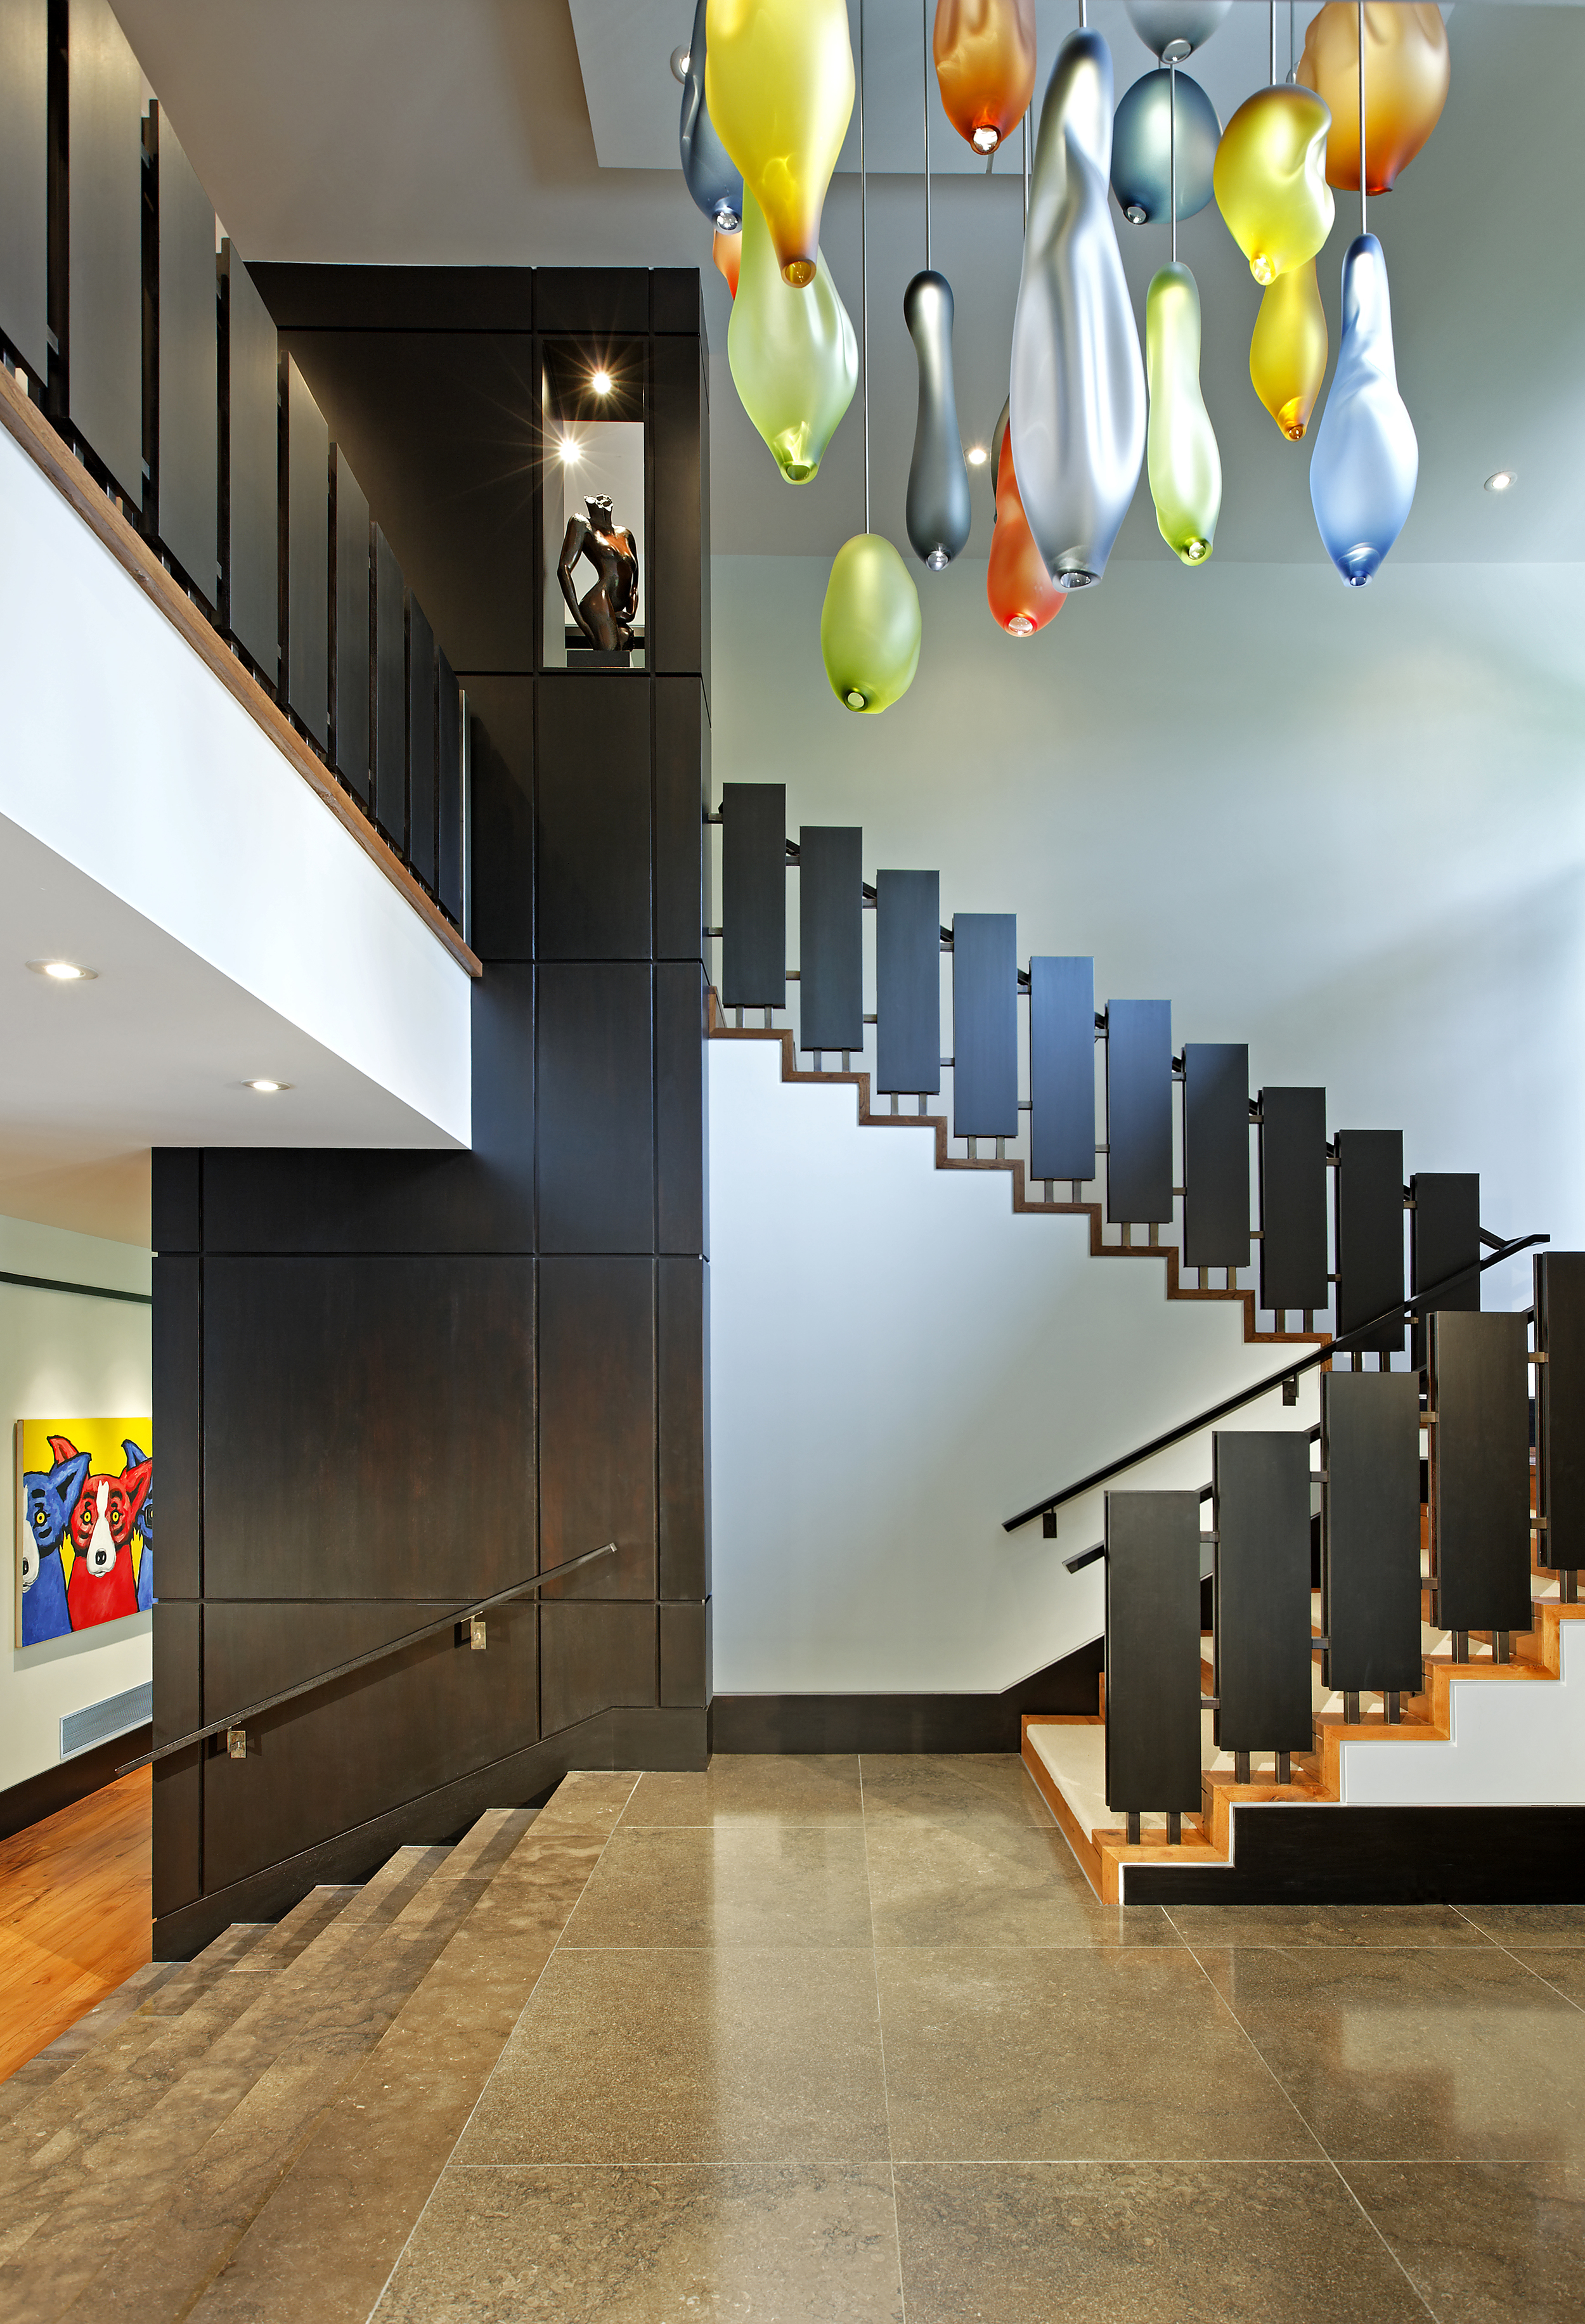 1_Stairs with light fixture.jpg